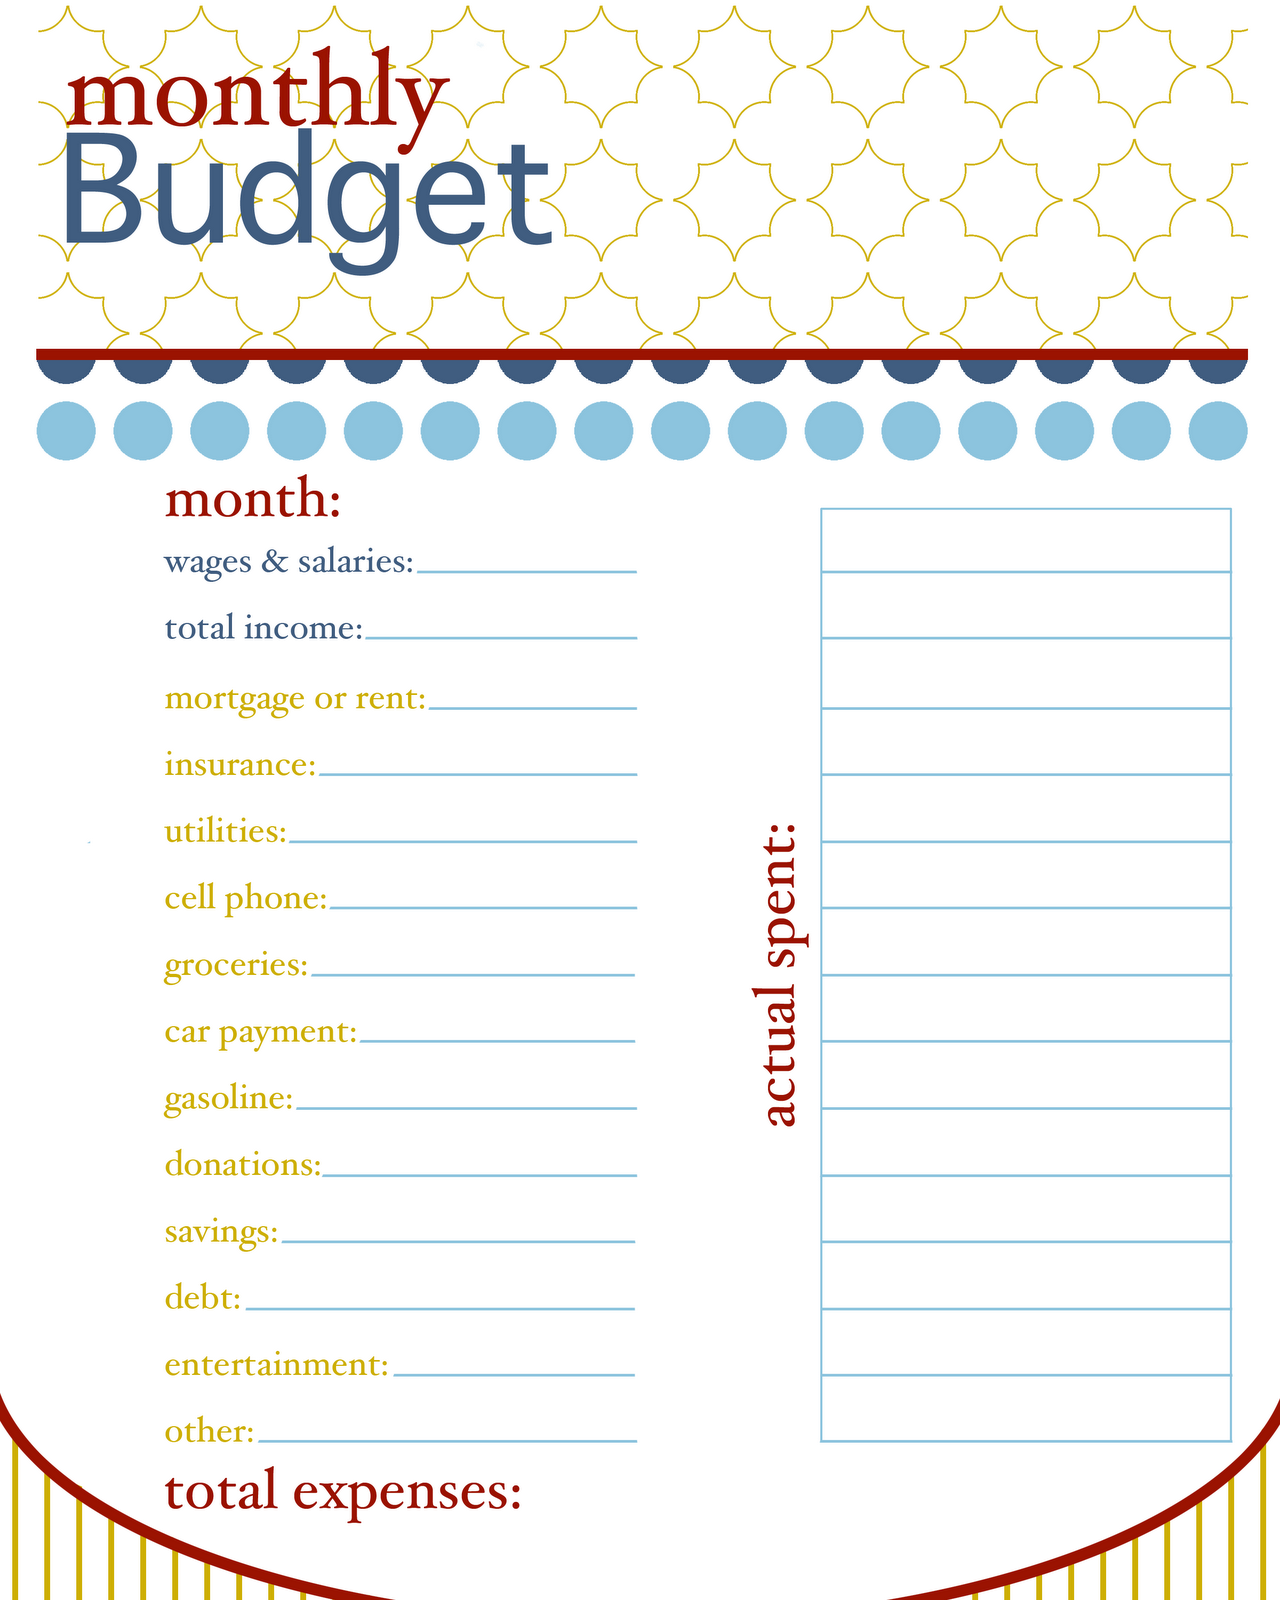 worksheet Printable Monthly Budget Worksheet printable monthly budget worksheet abitlikethis month worksheets planner free printables